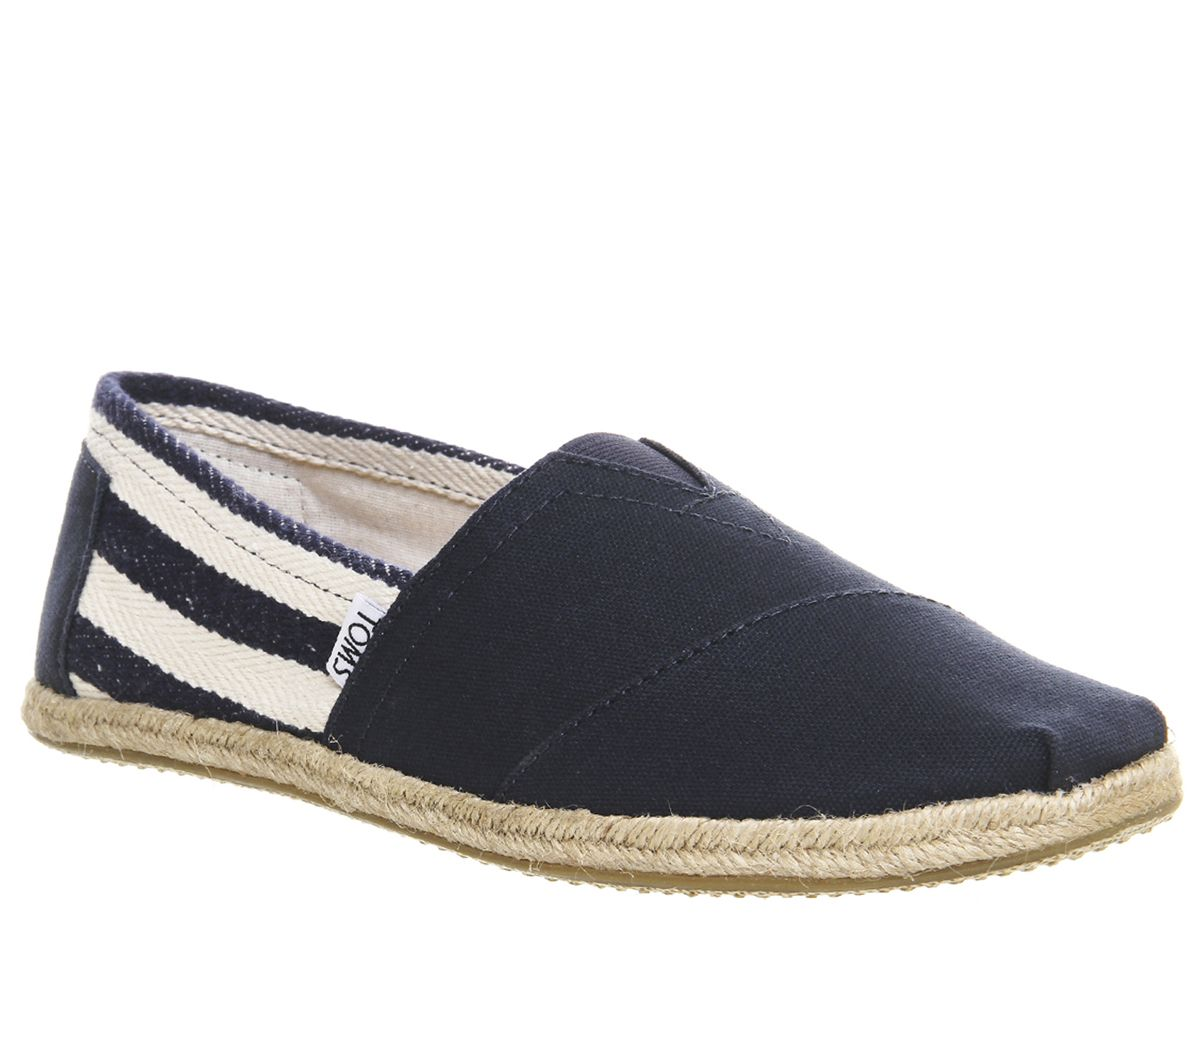 882a2d43907 Toms University Classic Slip Ons Navy - Casual